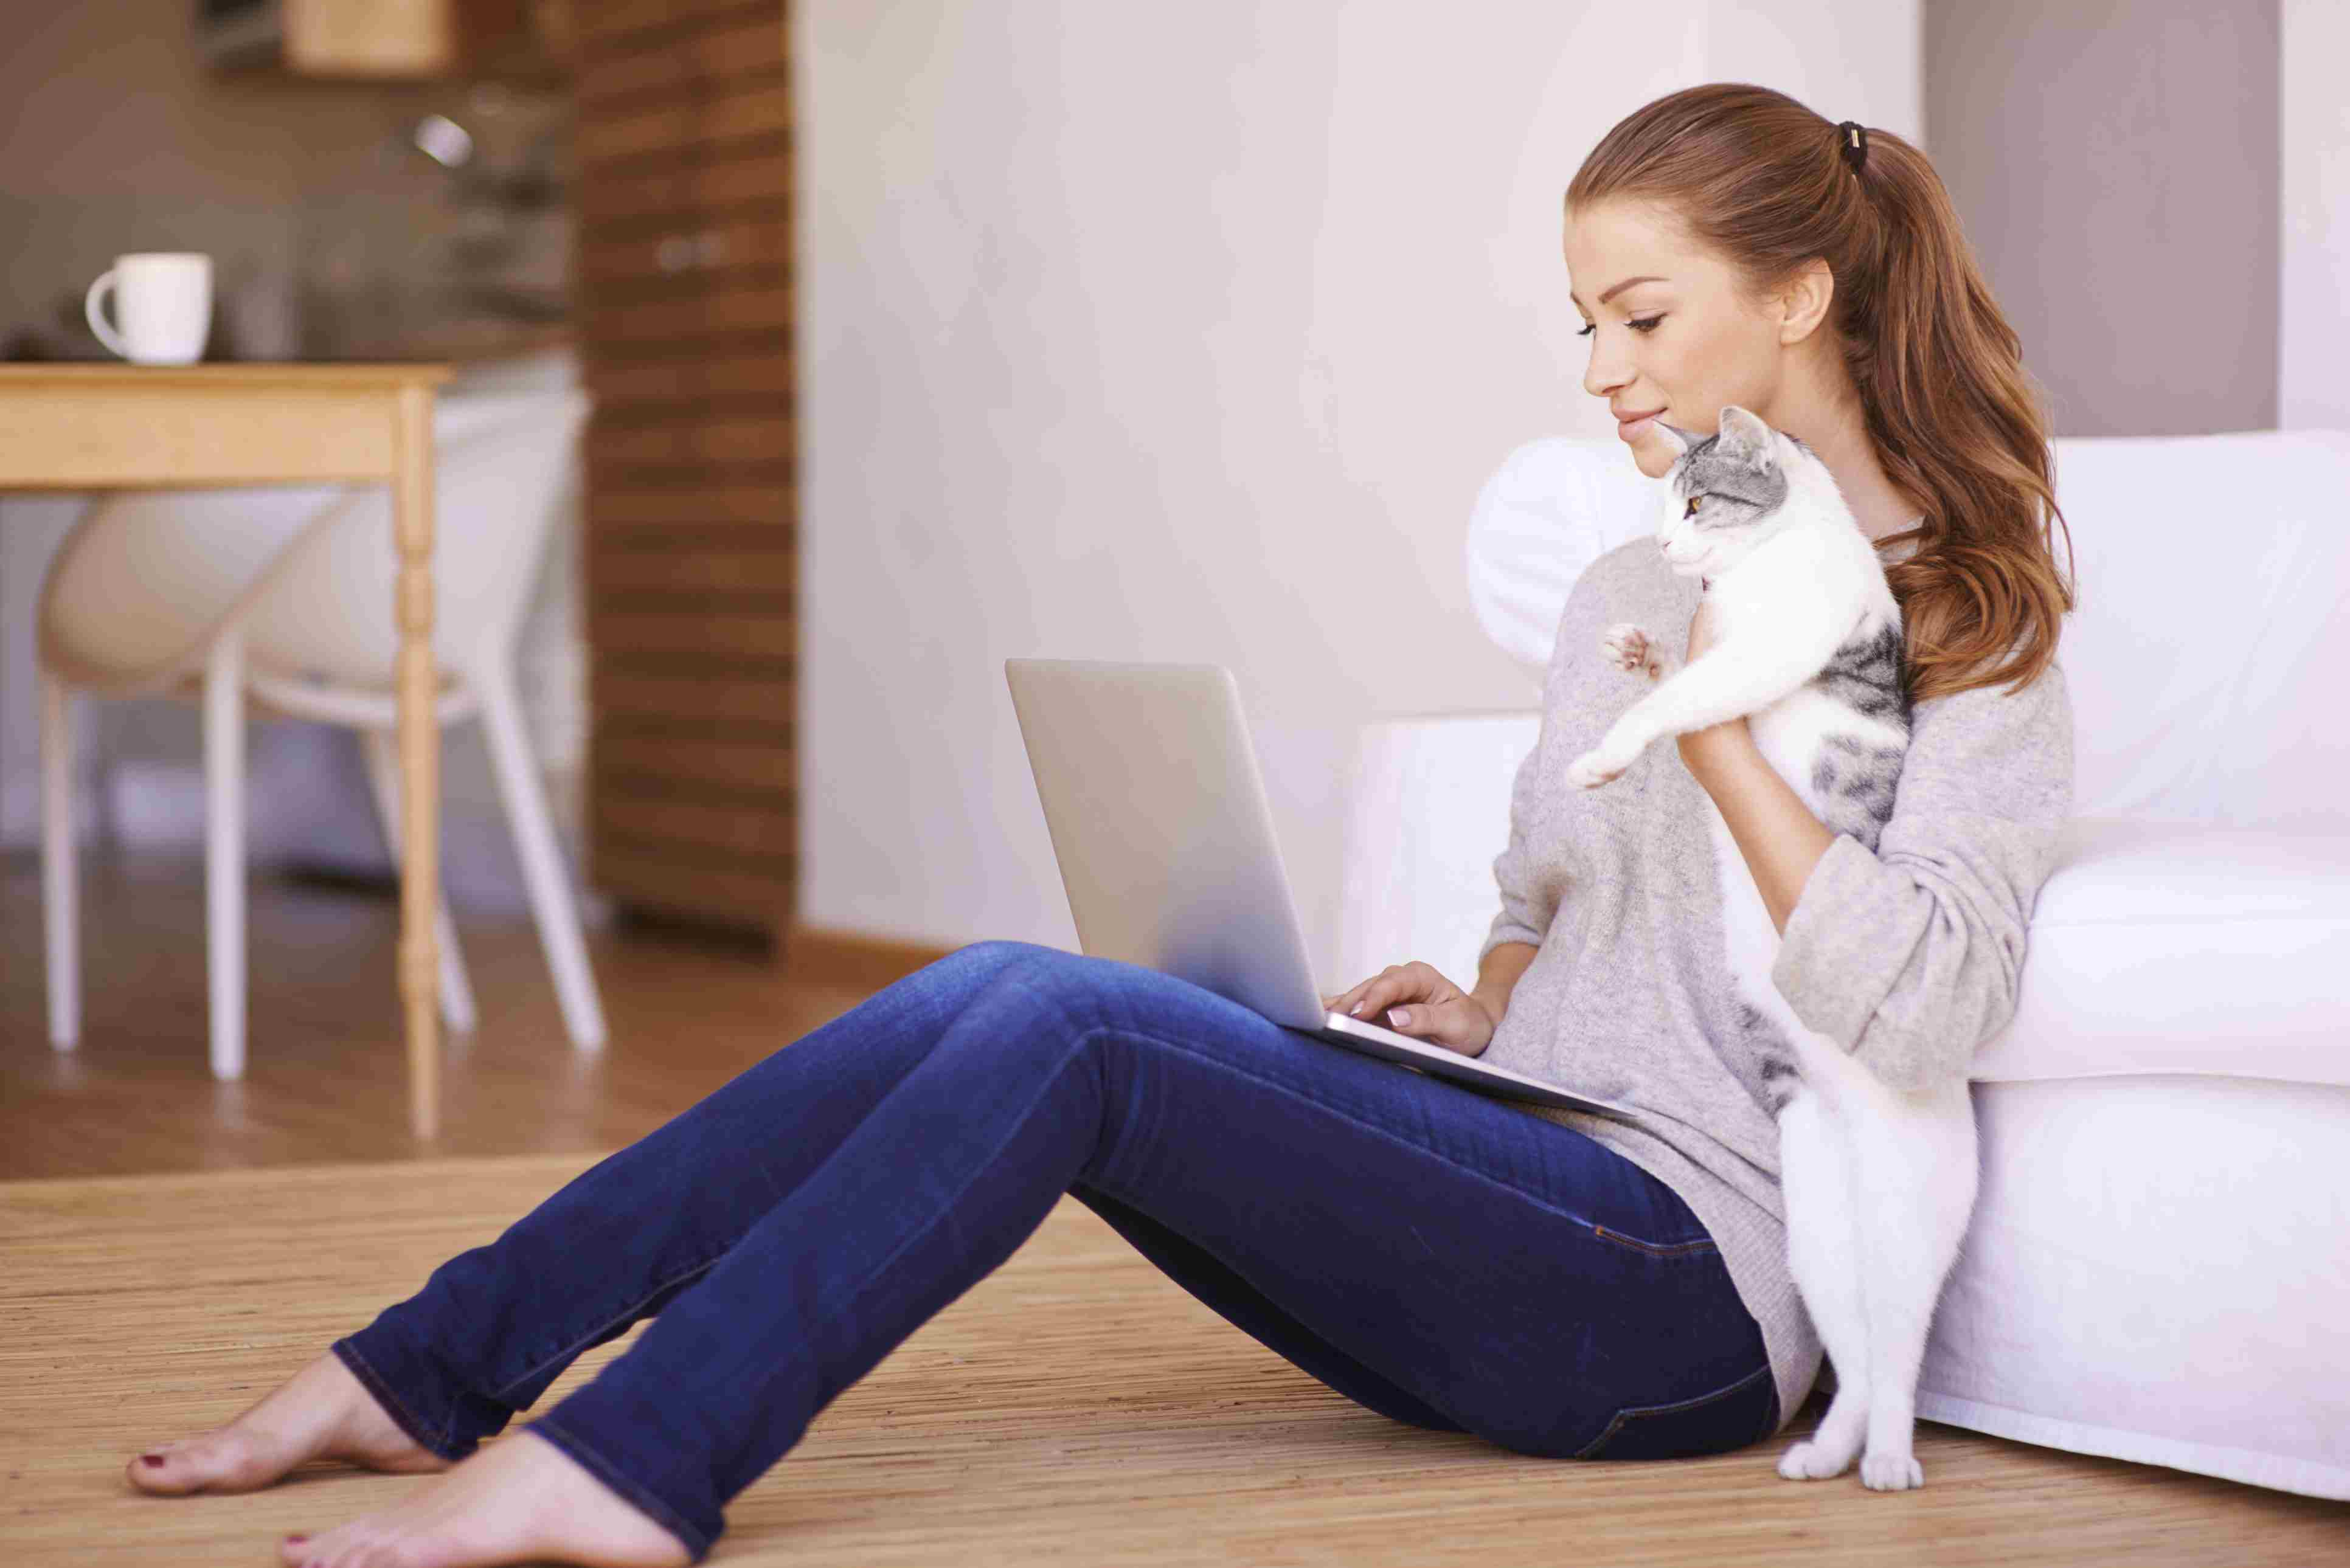 Woman in jeans typing on laptop holding a cat